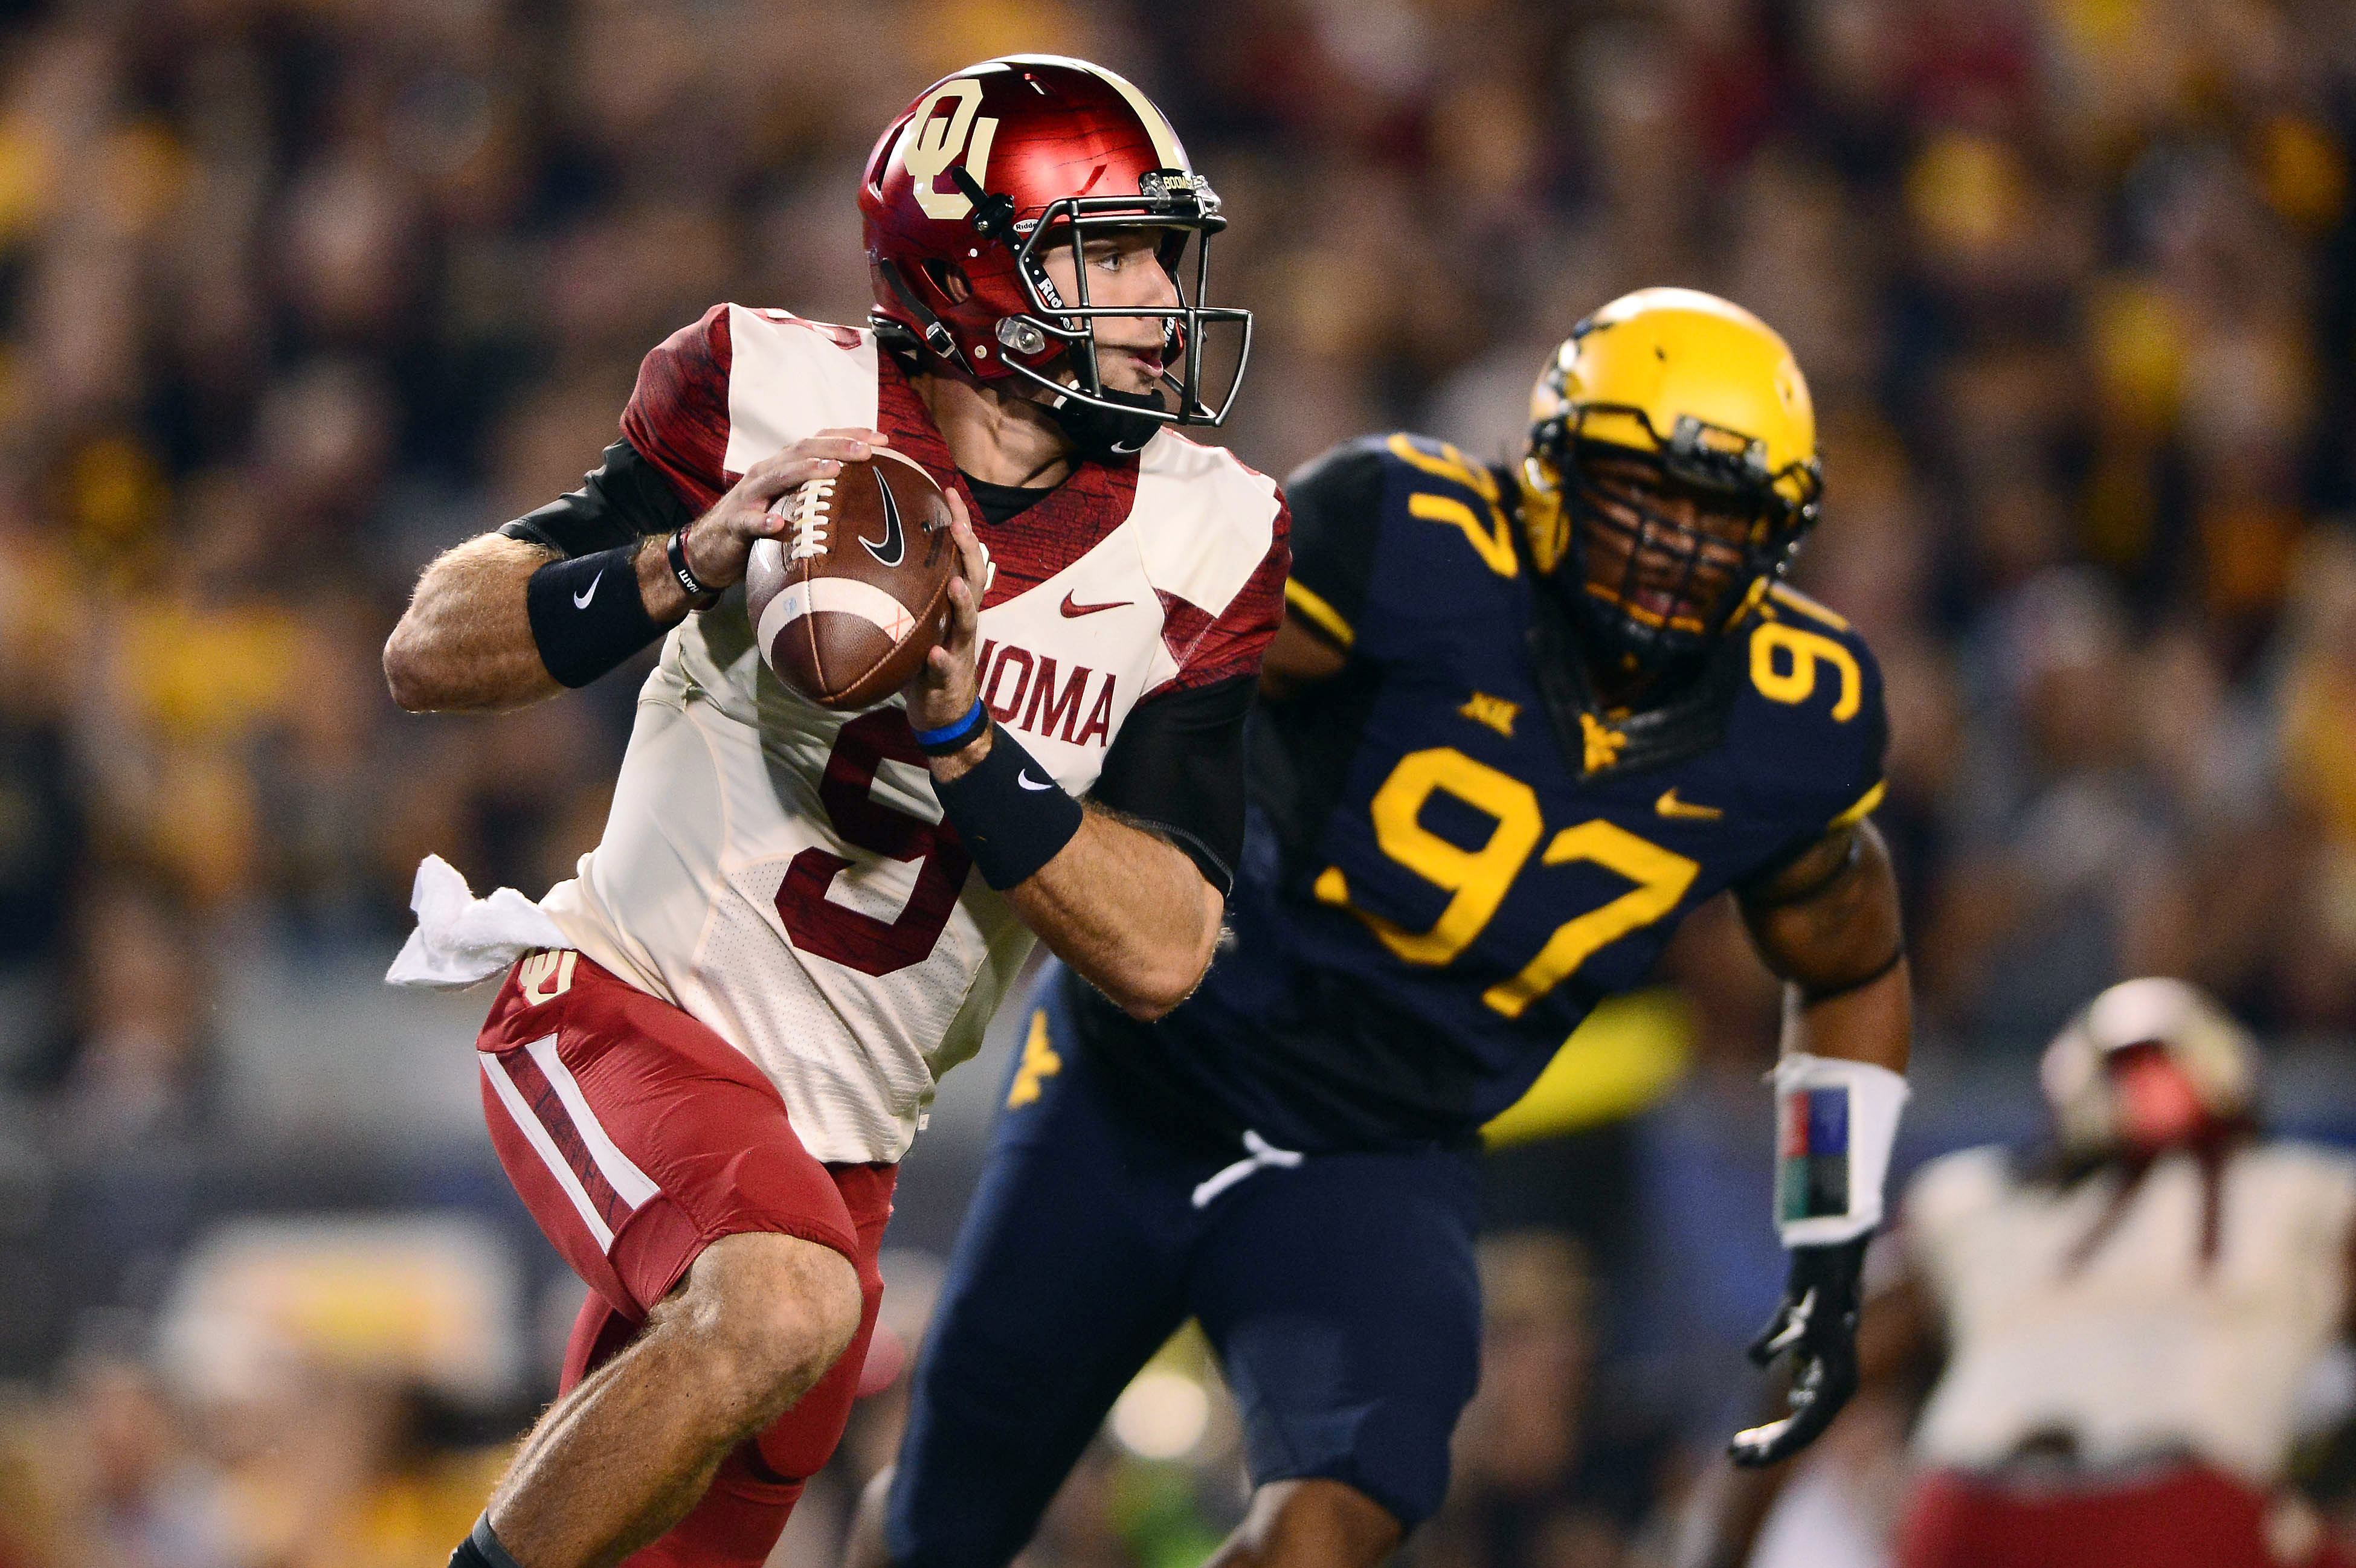 Oklahoma Sooners quarterback Trevor Knight (9) is pressured by West Virginia Mountaineers defensive lineman Noble Nwachukwu (97) during the first quarter at Milan Puskar Stadium. (Andrew Weber-USA TODAY Sports)